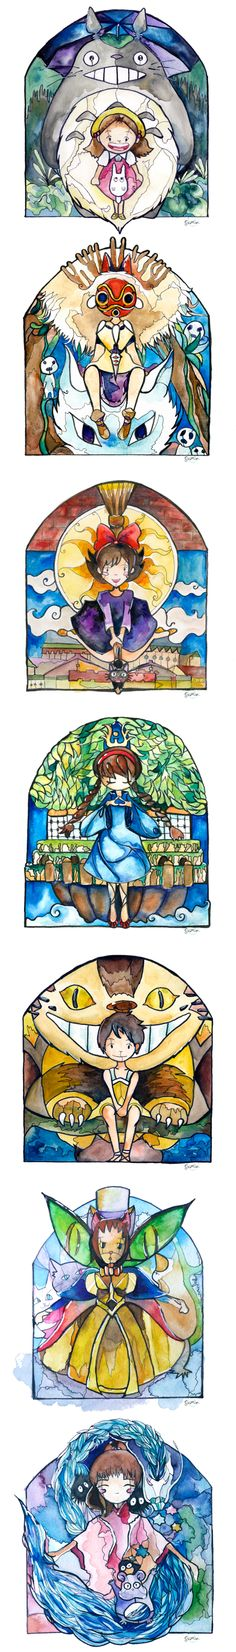 Studio Ghibli Characters Stained Glass Series by Susan Lin